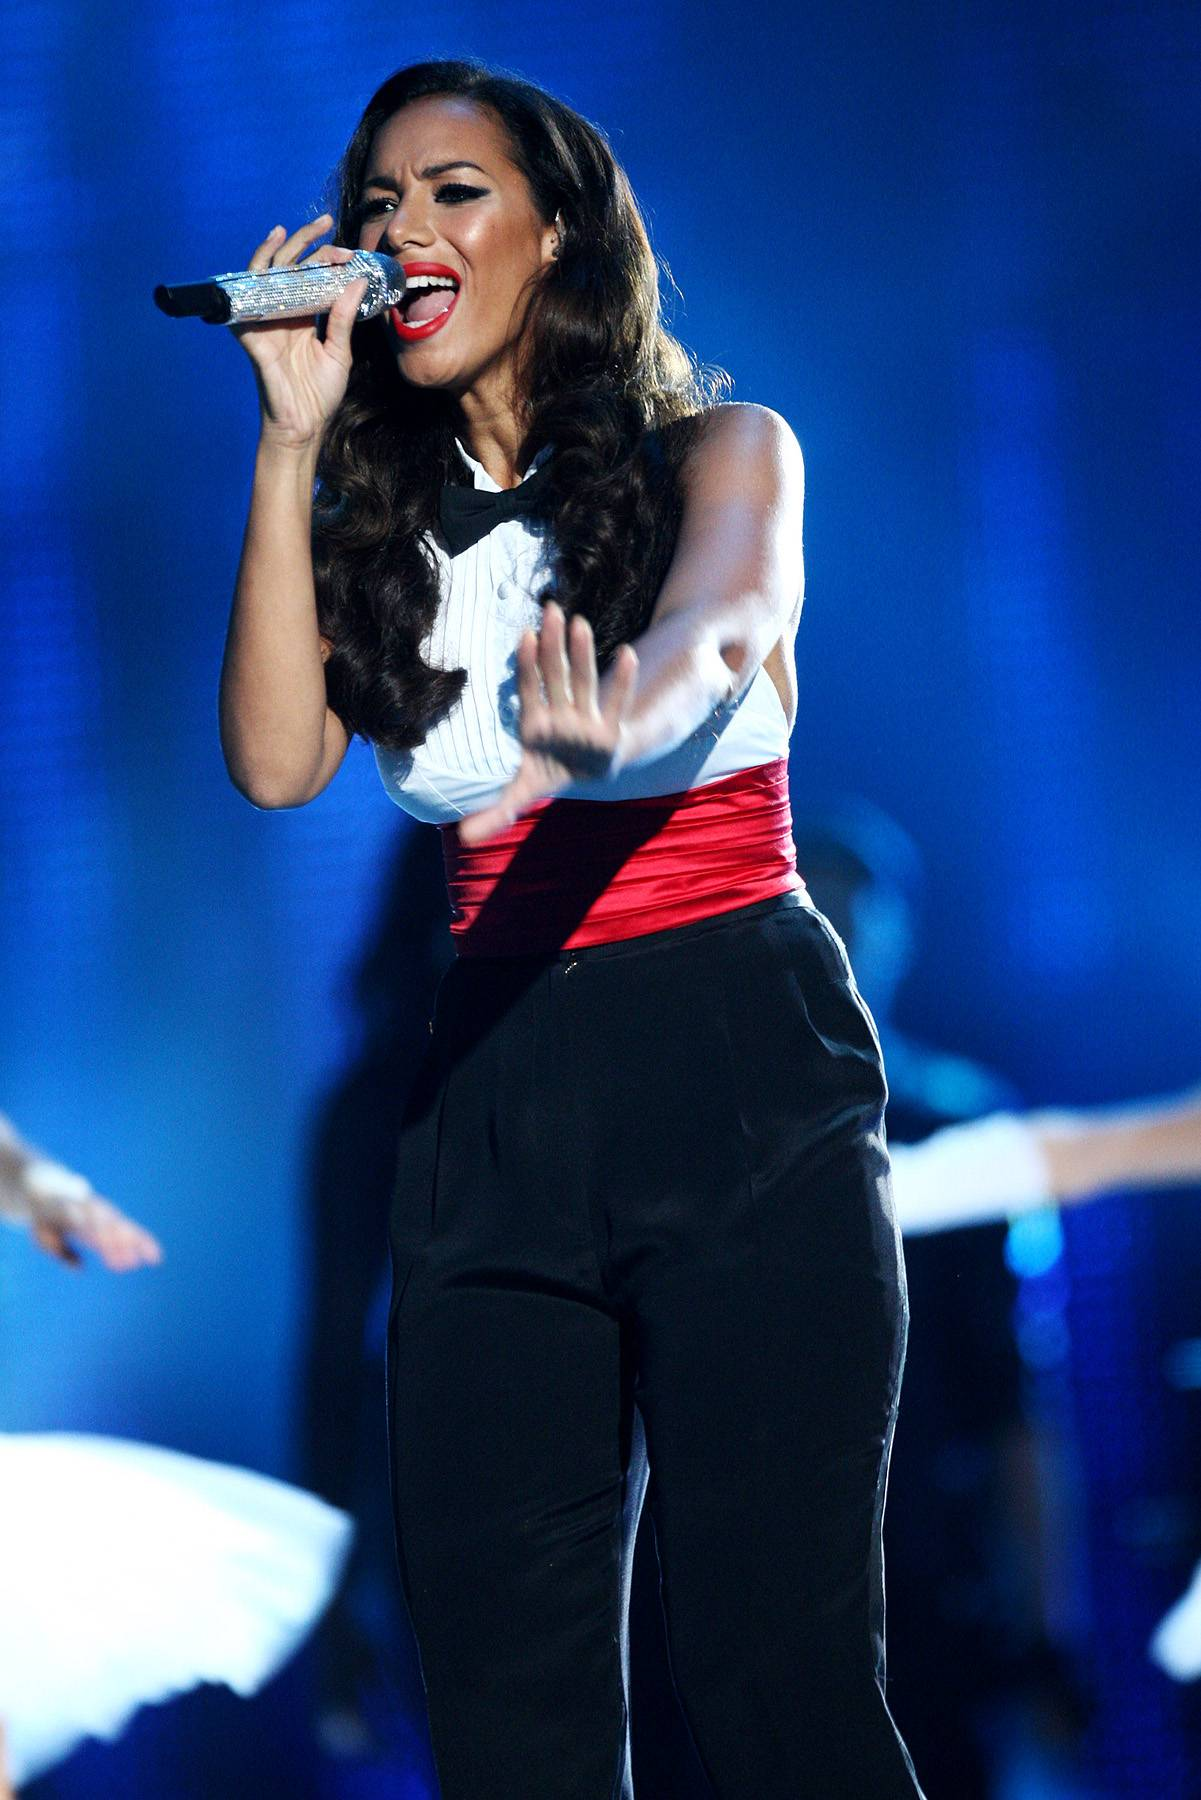 Leona Lewis - Before we had the competition talent show X Factor in America, there was the X Factor in England. Leona Lewis got her start there in 2006, won the competition and then hit the charts. It's been smooth sailing ever since!(Photo: Dave J Hogan/Getty Images)